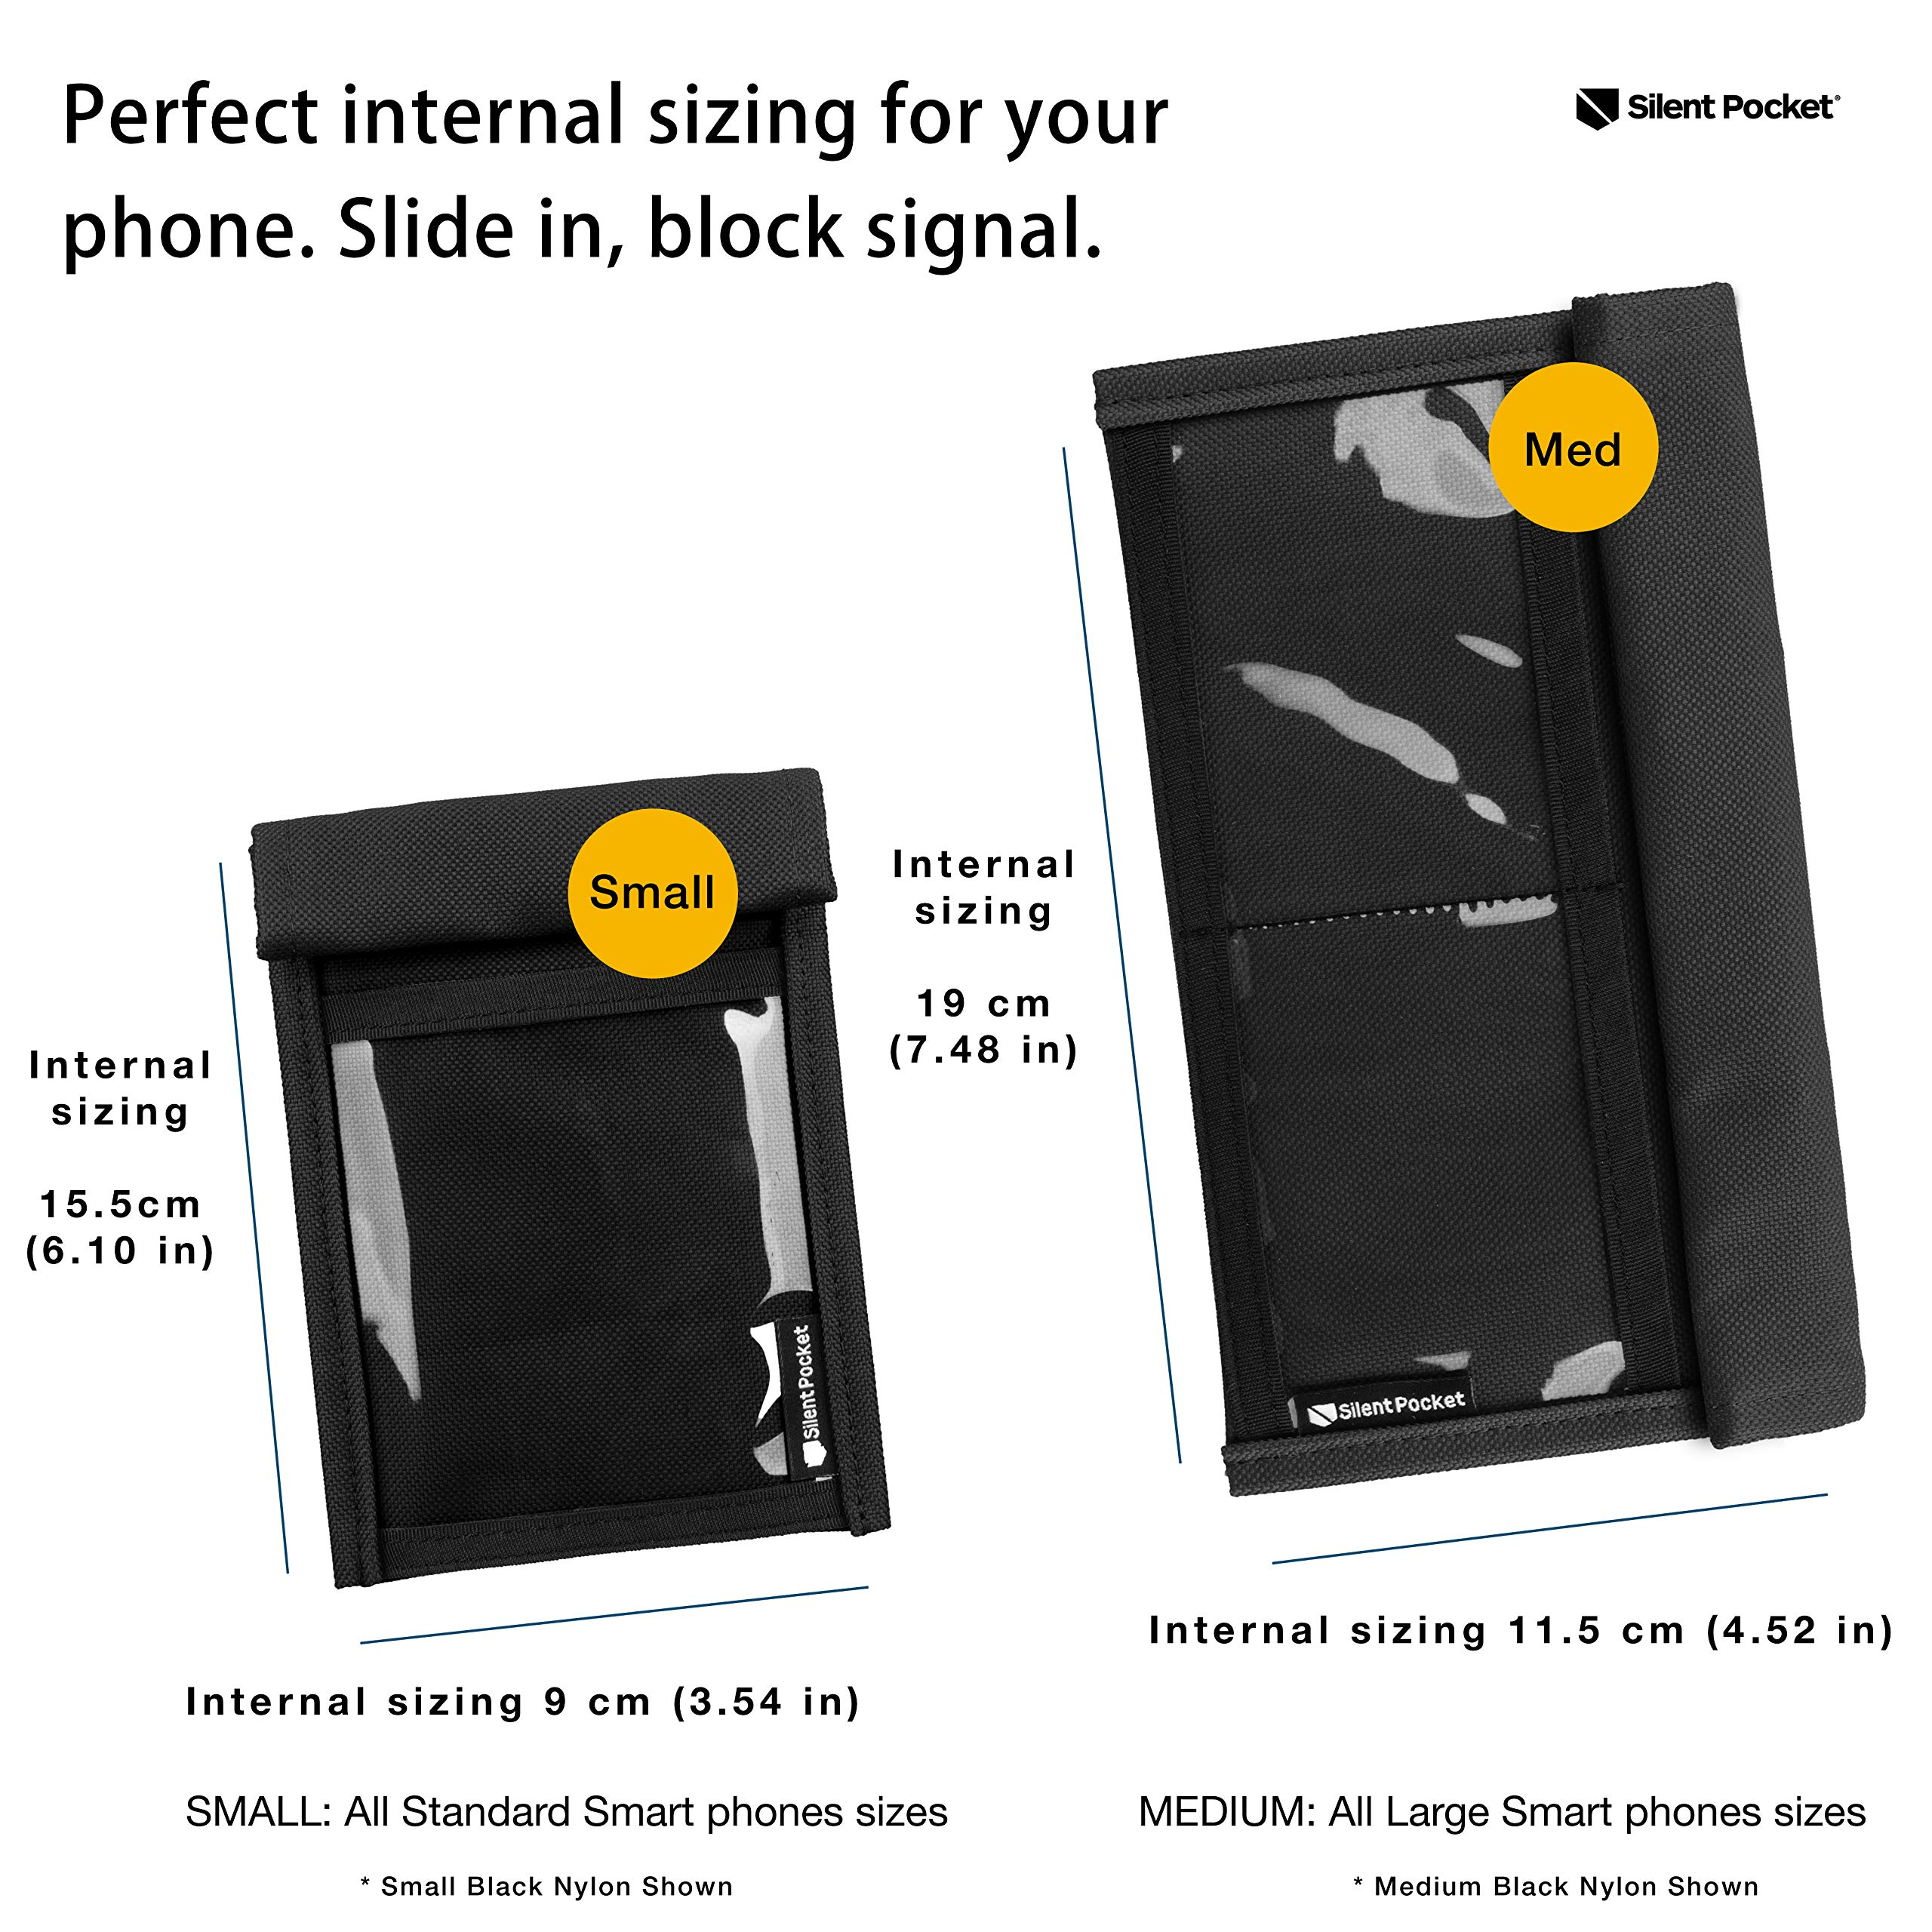 Privacy Device Shielding for Smartphones Multiple Colors Samsung Galaxy Anti-Hacking iPhone Silent Pocket Quick Access Utility Faraday Bag More for Travel Waterproof Signal Blocking Nylon